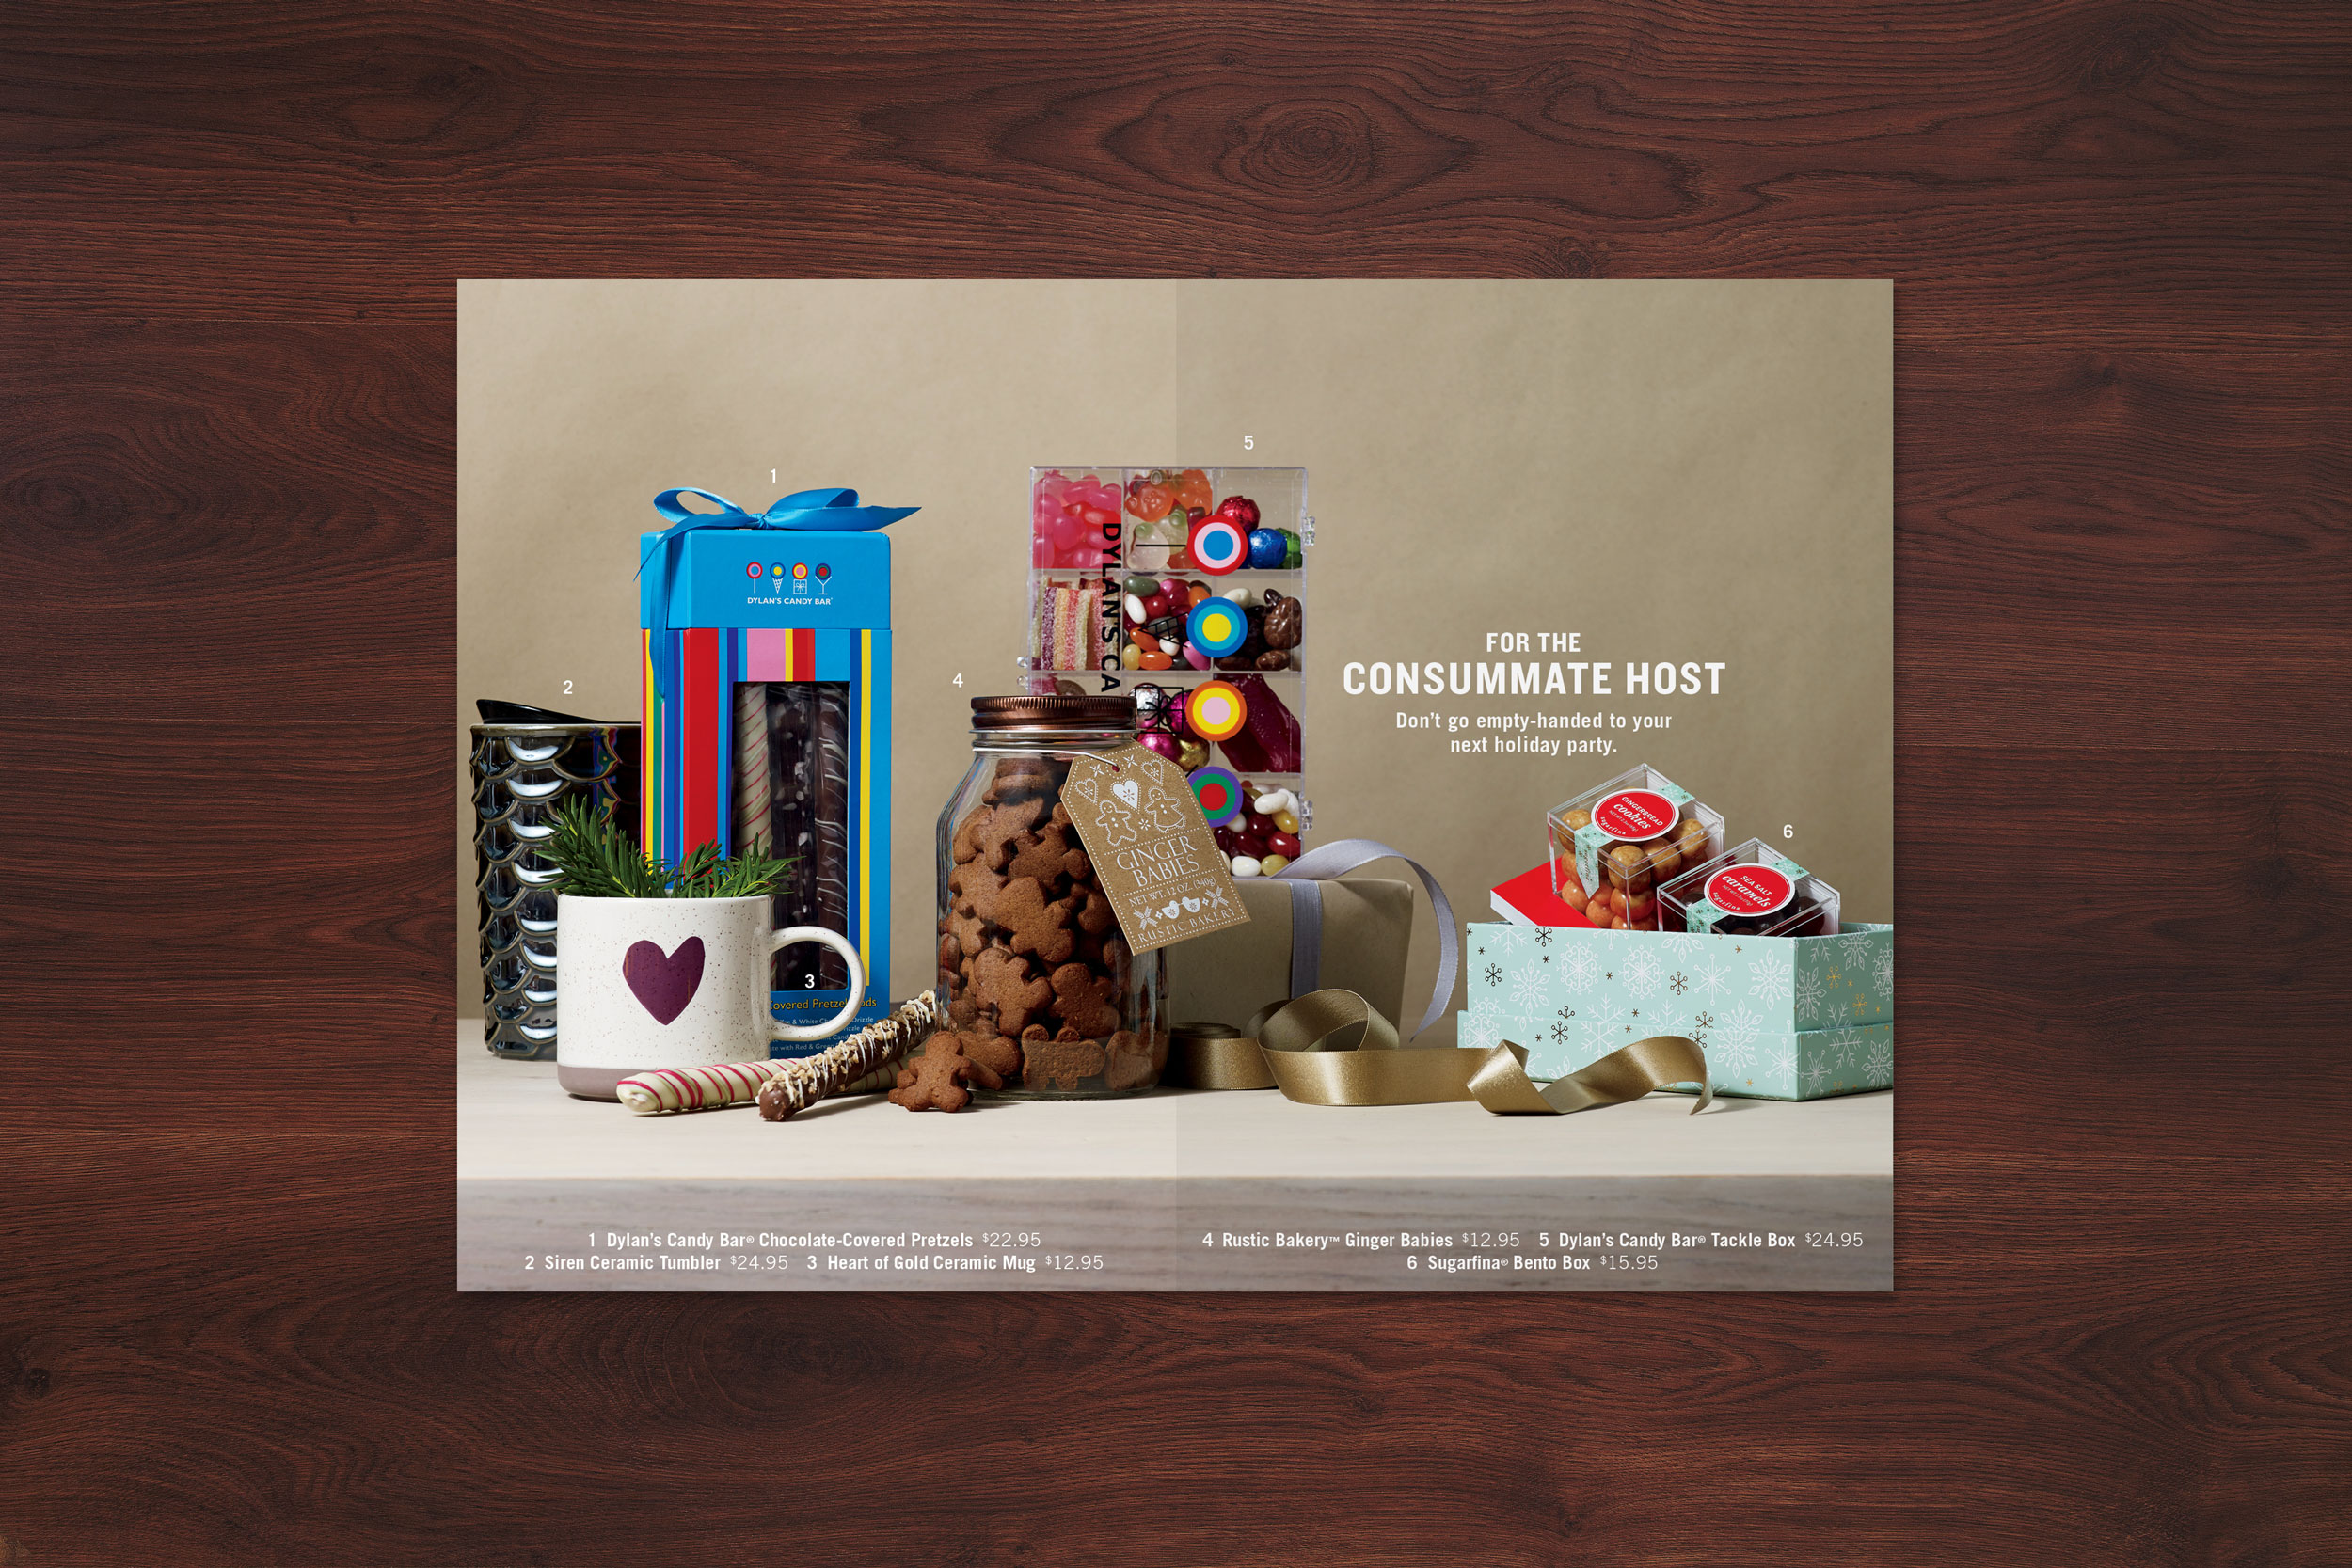 Holiday-Gift-Guide-Consummate-Host-DETAIL.jpg